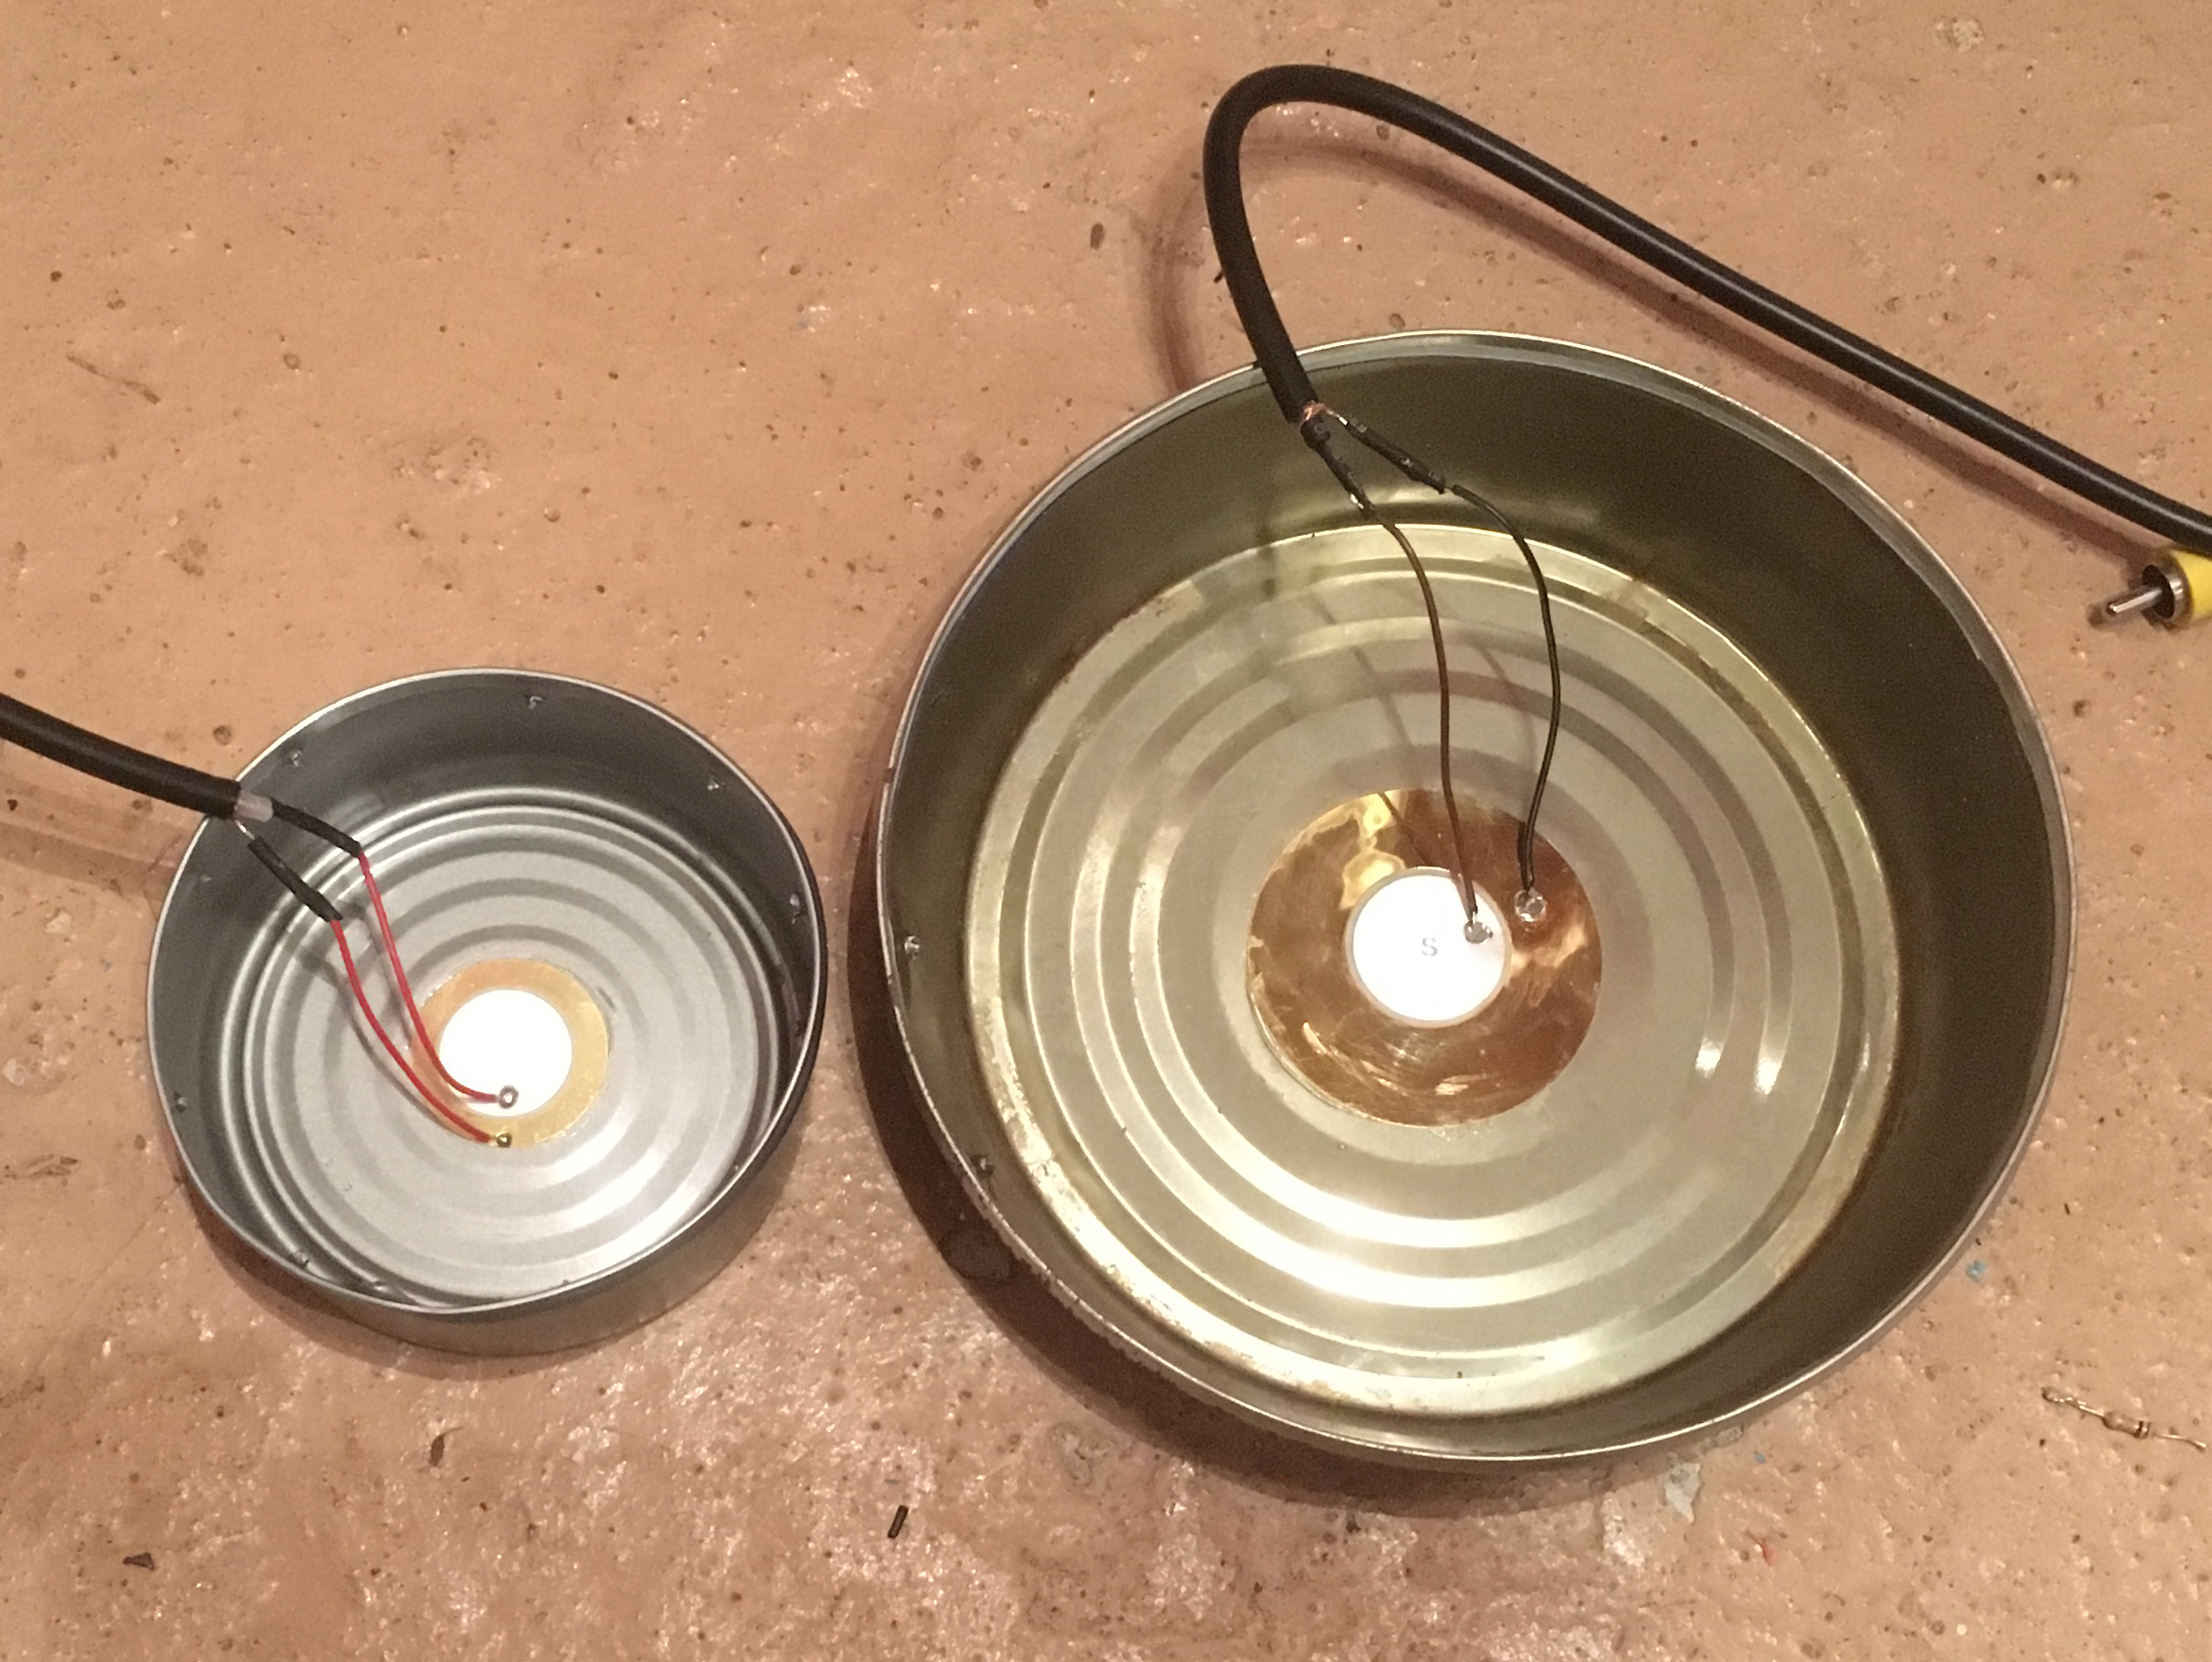 Construction Music Electronics Page 2 Sounder Sensor Trigger Drum Disc Plus Wire Copper Piezo Elements 27mm In Other Words Its Best If The Can Be Glued To Surface I Did This With Some Of Non Valuable Items